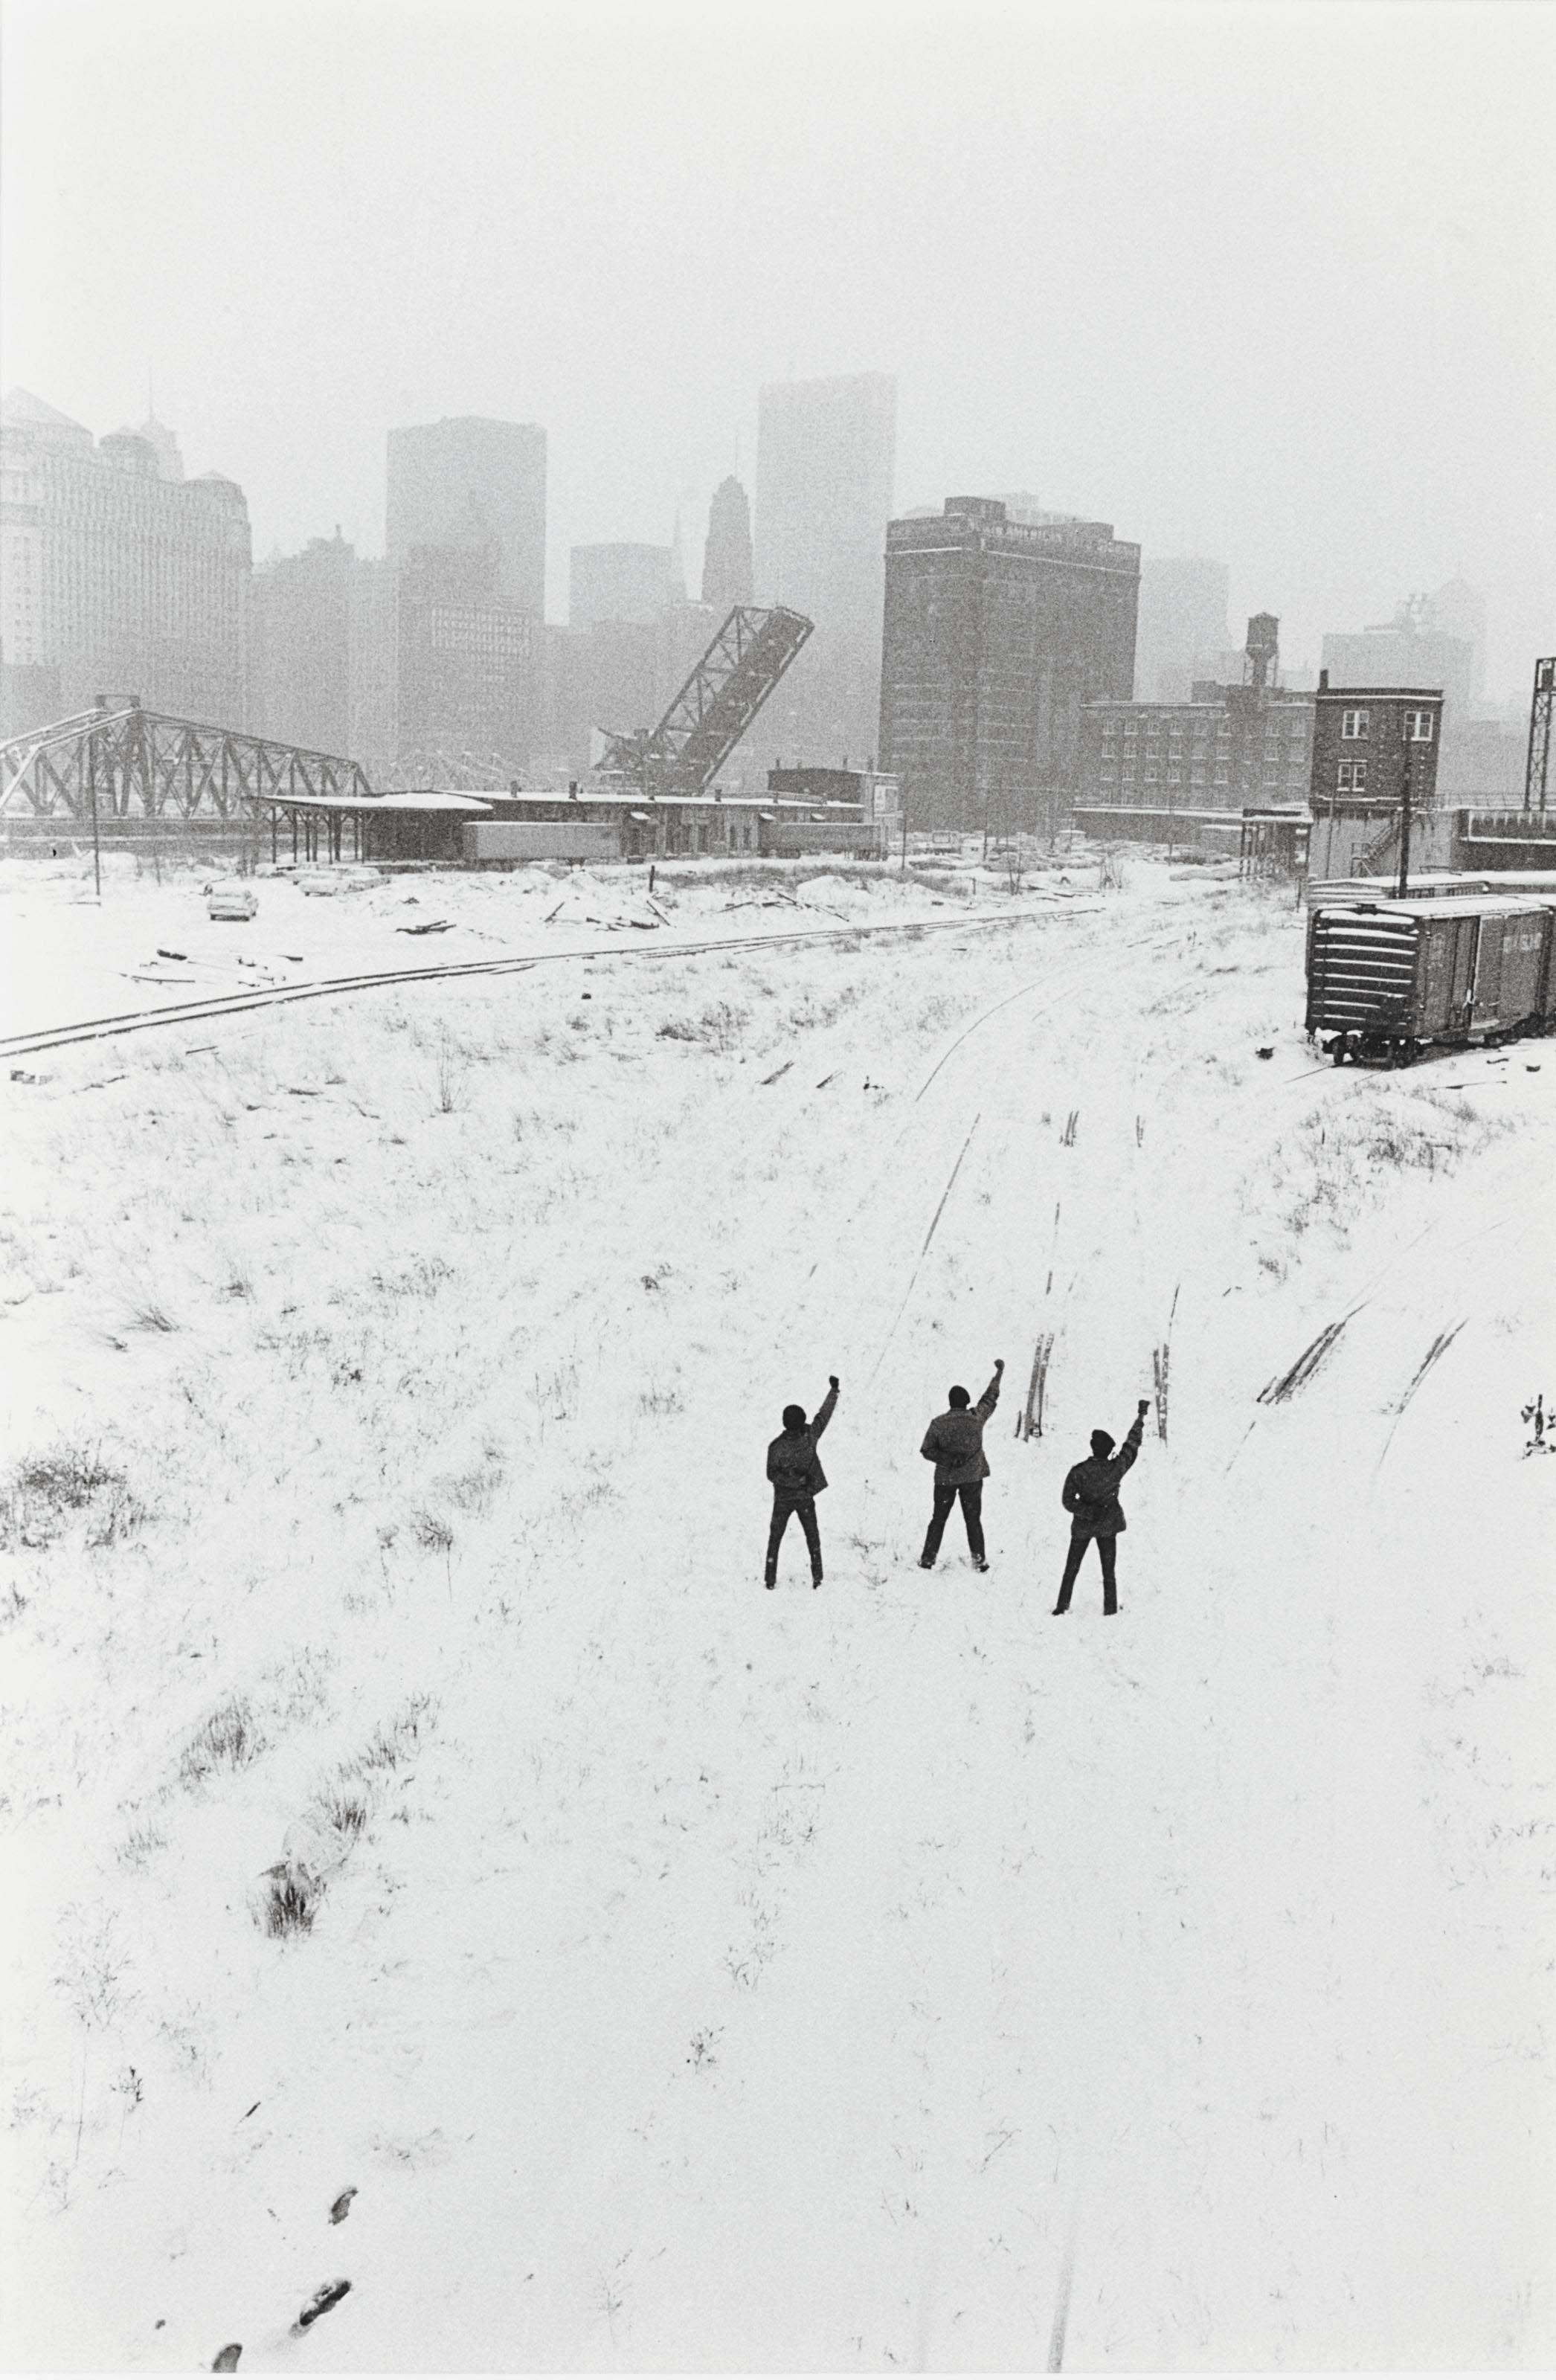 Black Panthers in Chicago Railyard, 1968